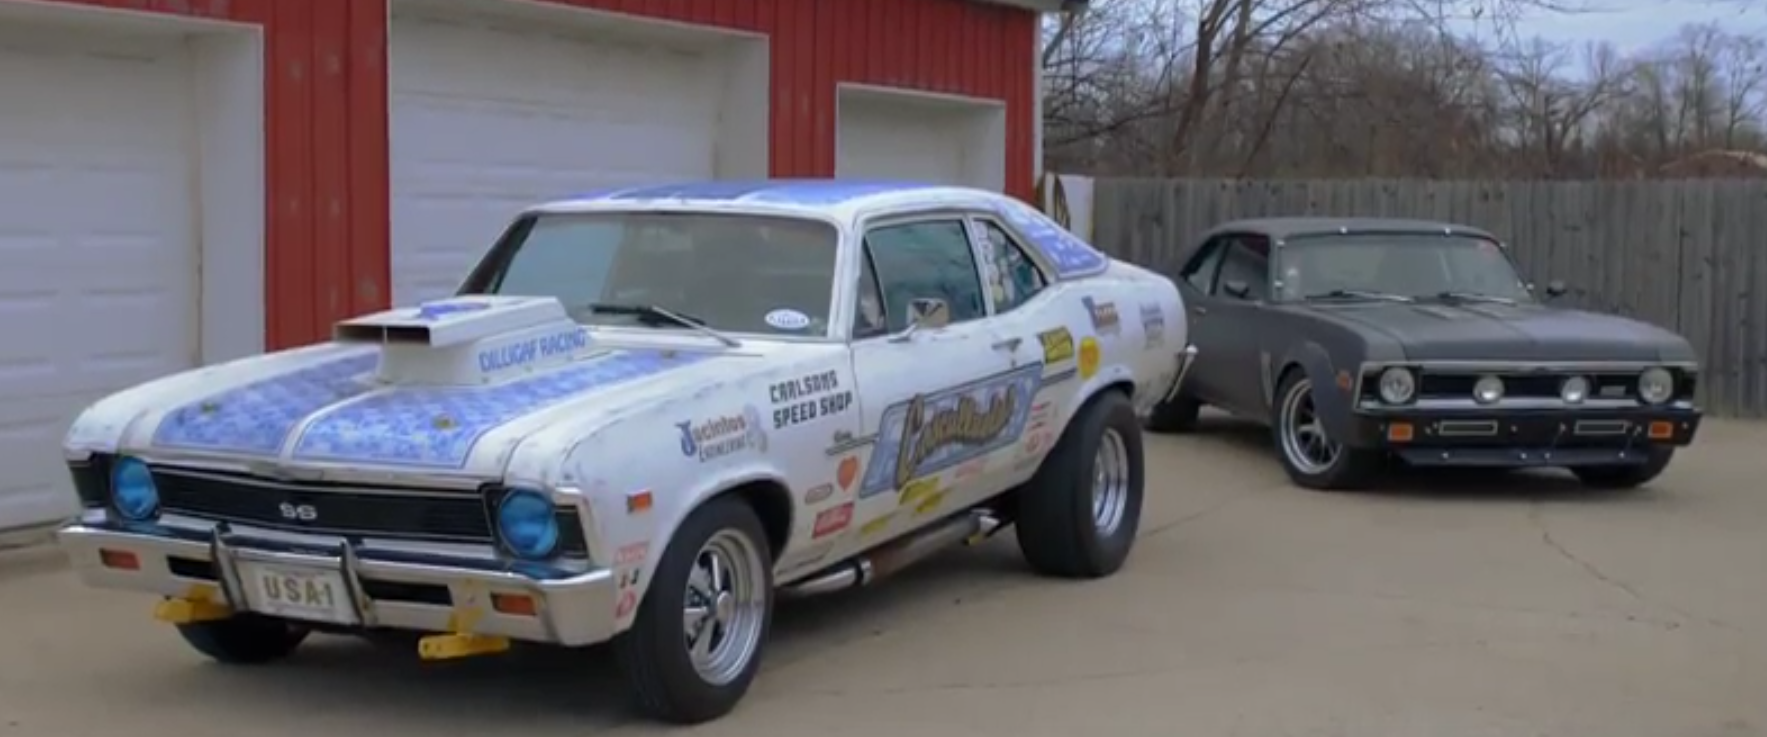 Ohio Street Freak Extra - Extra footage from episode 4 of The House of Muscle.